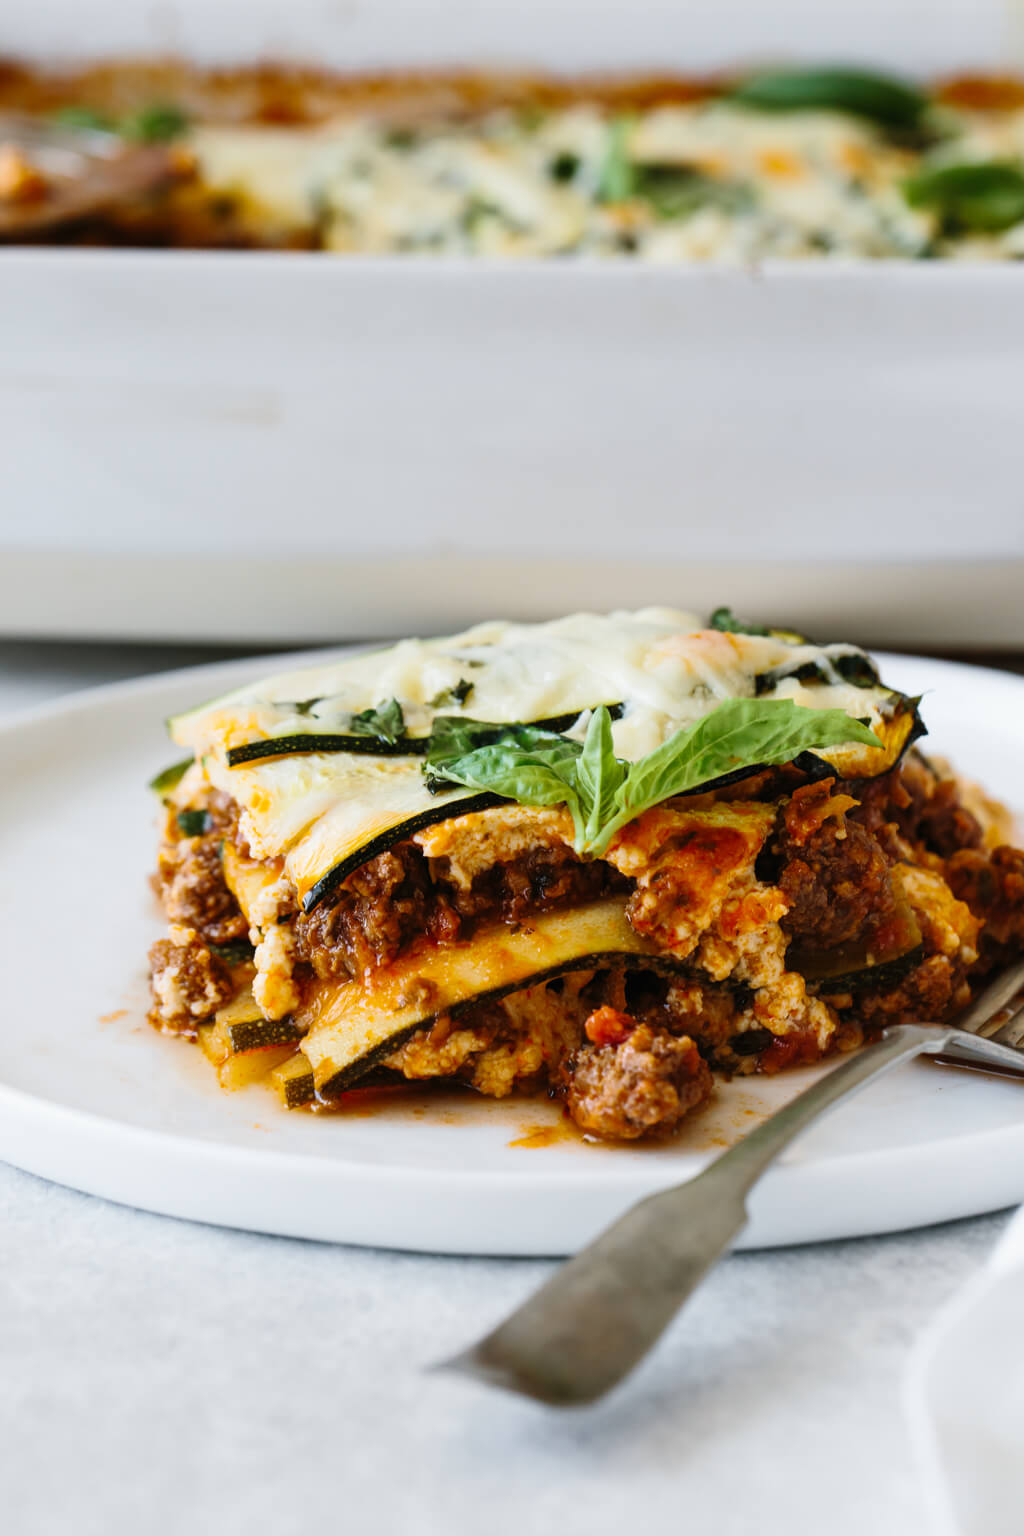 A single slice of zucchini lasagna on a plate.